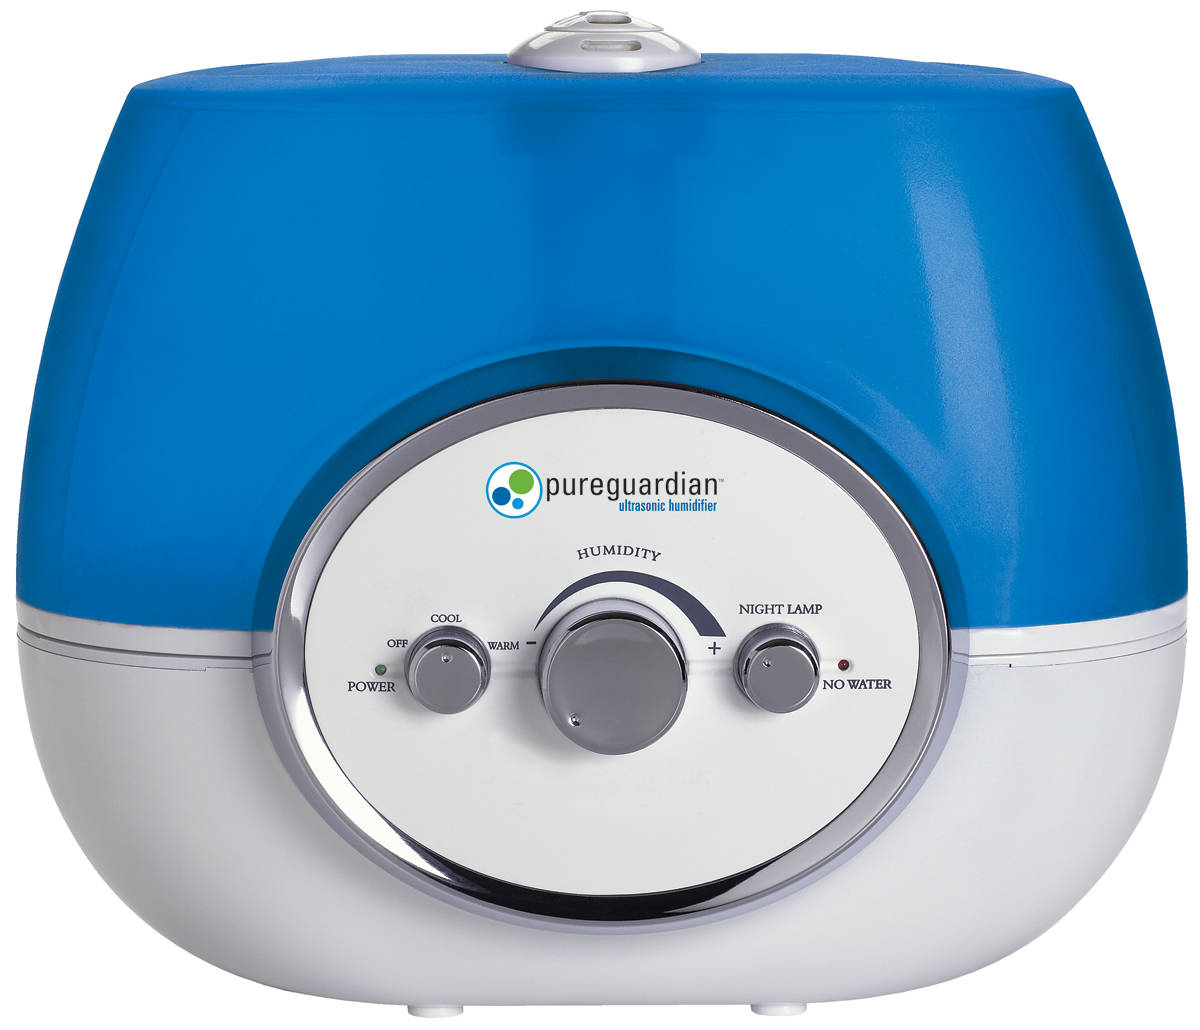 Hour Ultrasonic Warm and Cool Mist Humidifier 2 Gallon Walmart.com #025F9B